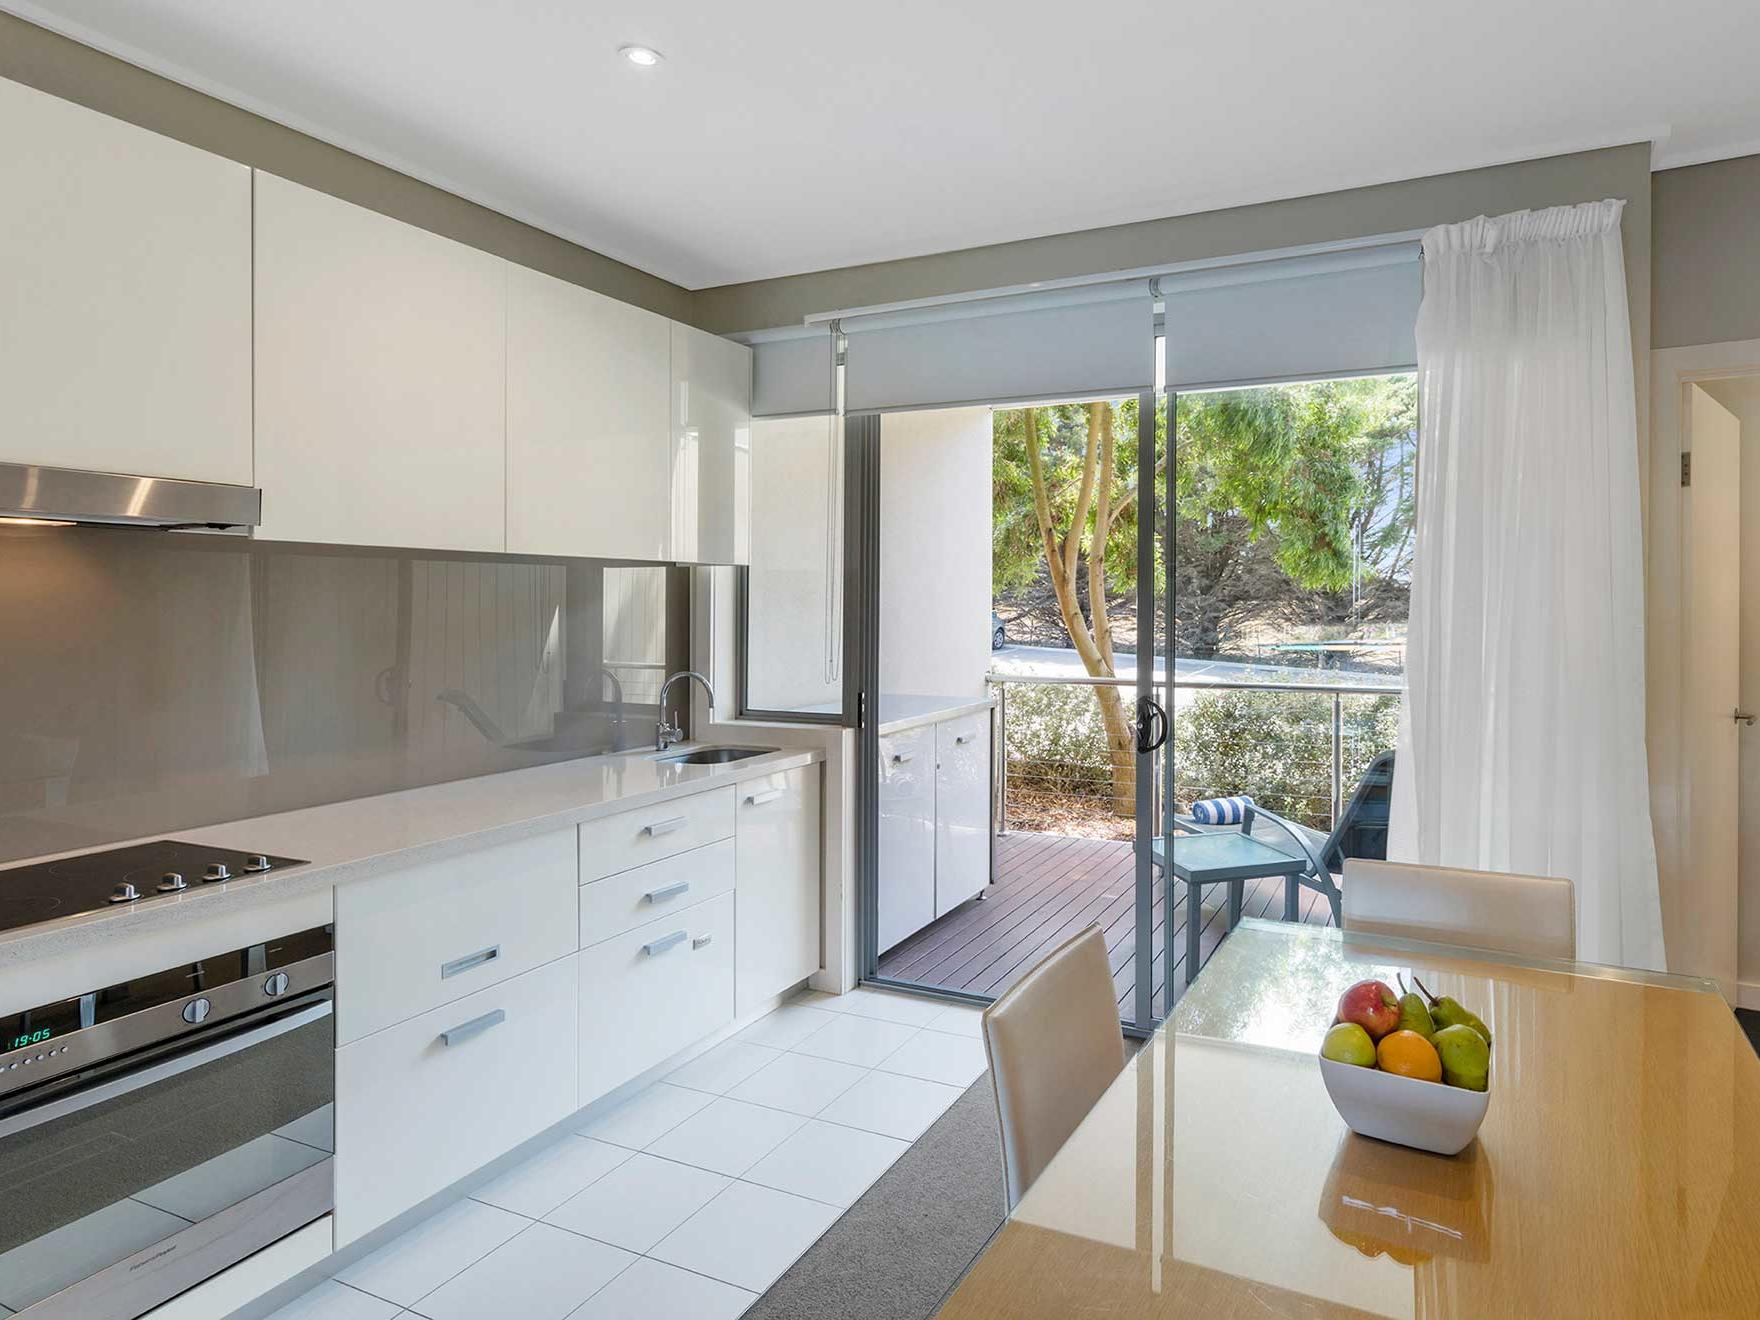 A chef's kitchen in 1 Bedroom Apartments at Silverwater Resort